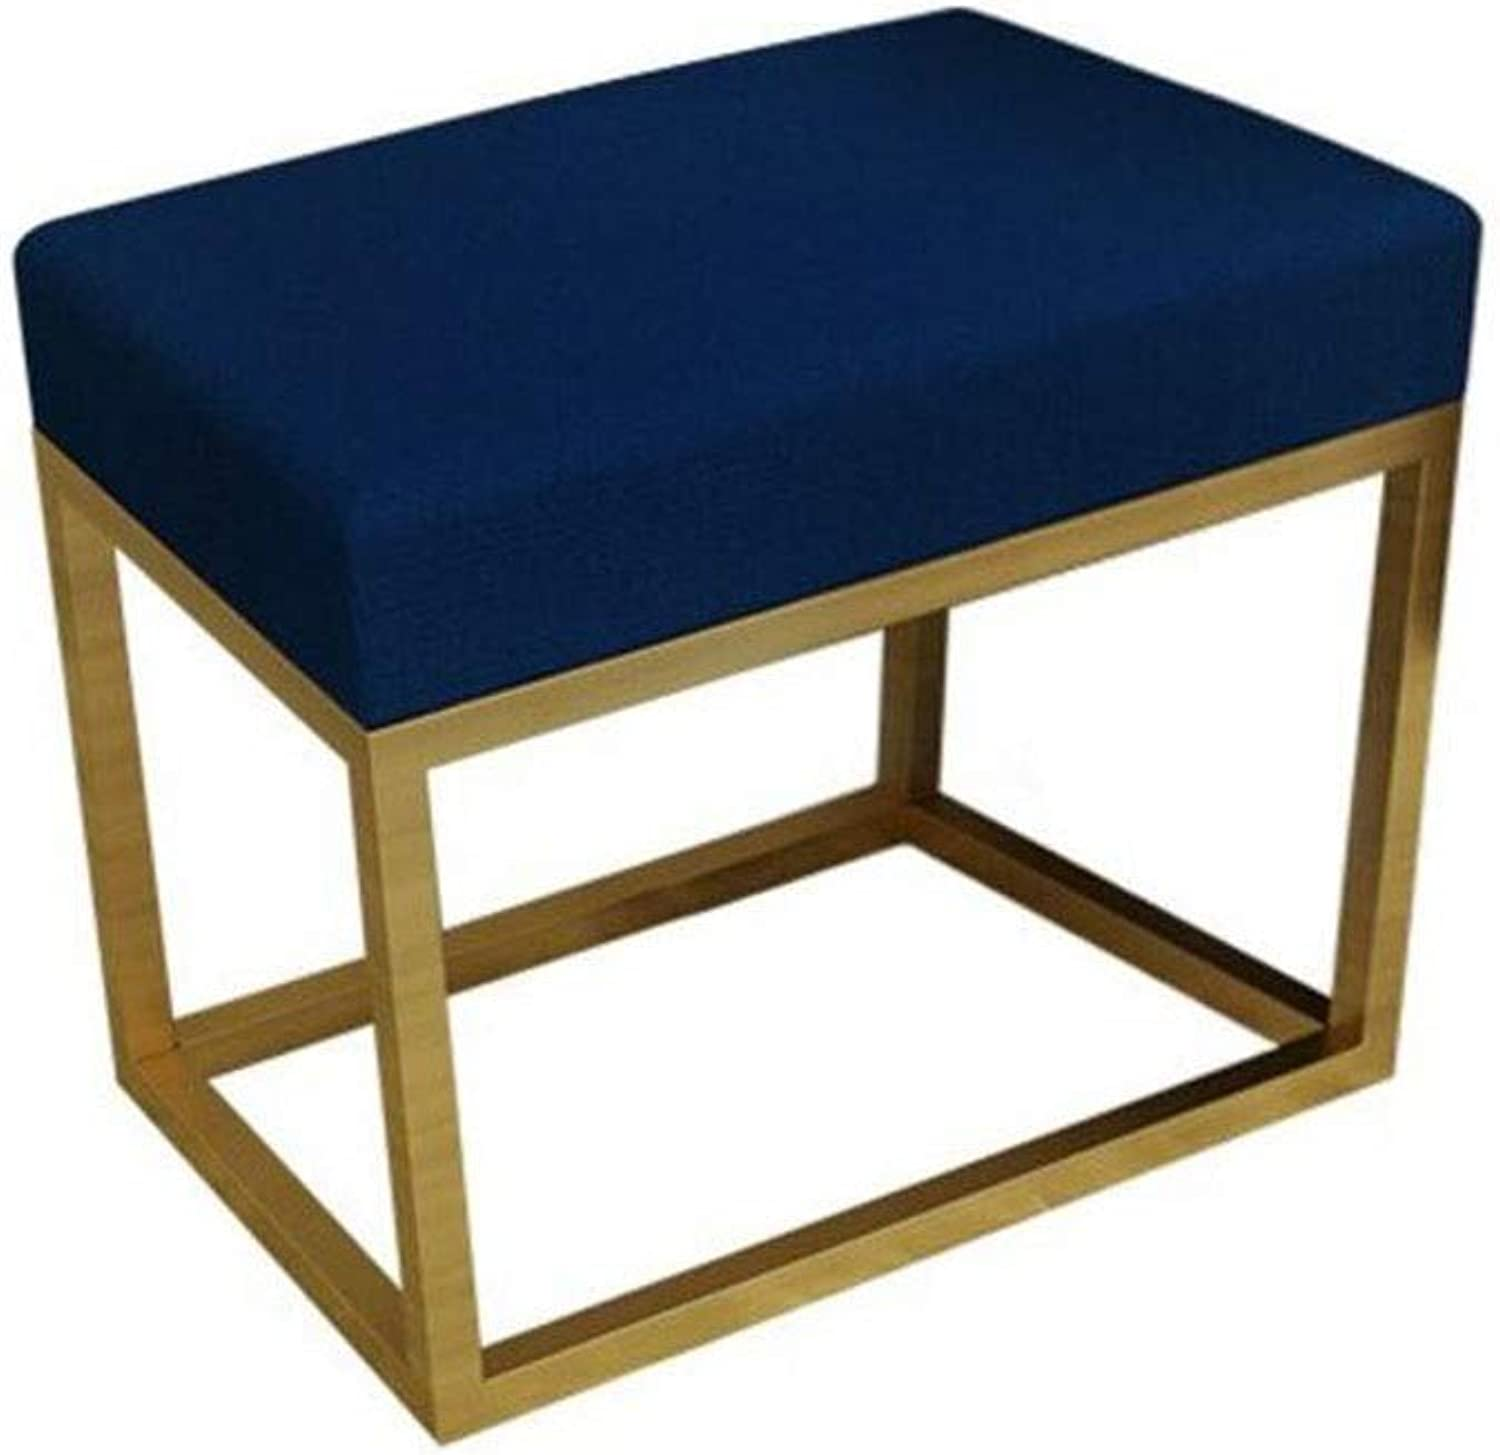 QIQI-LIFE Sofa Stool Wrought Iron shoes Stool Simple Living Room Sofa Bench Bedroom Vanity Stool (color   bluee, Size   40CM)